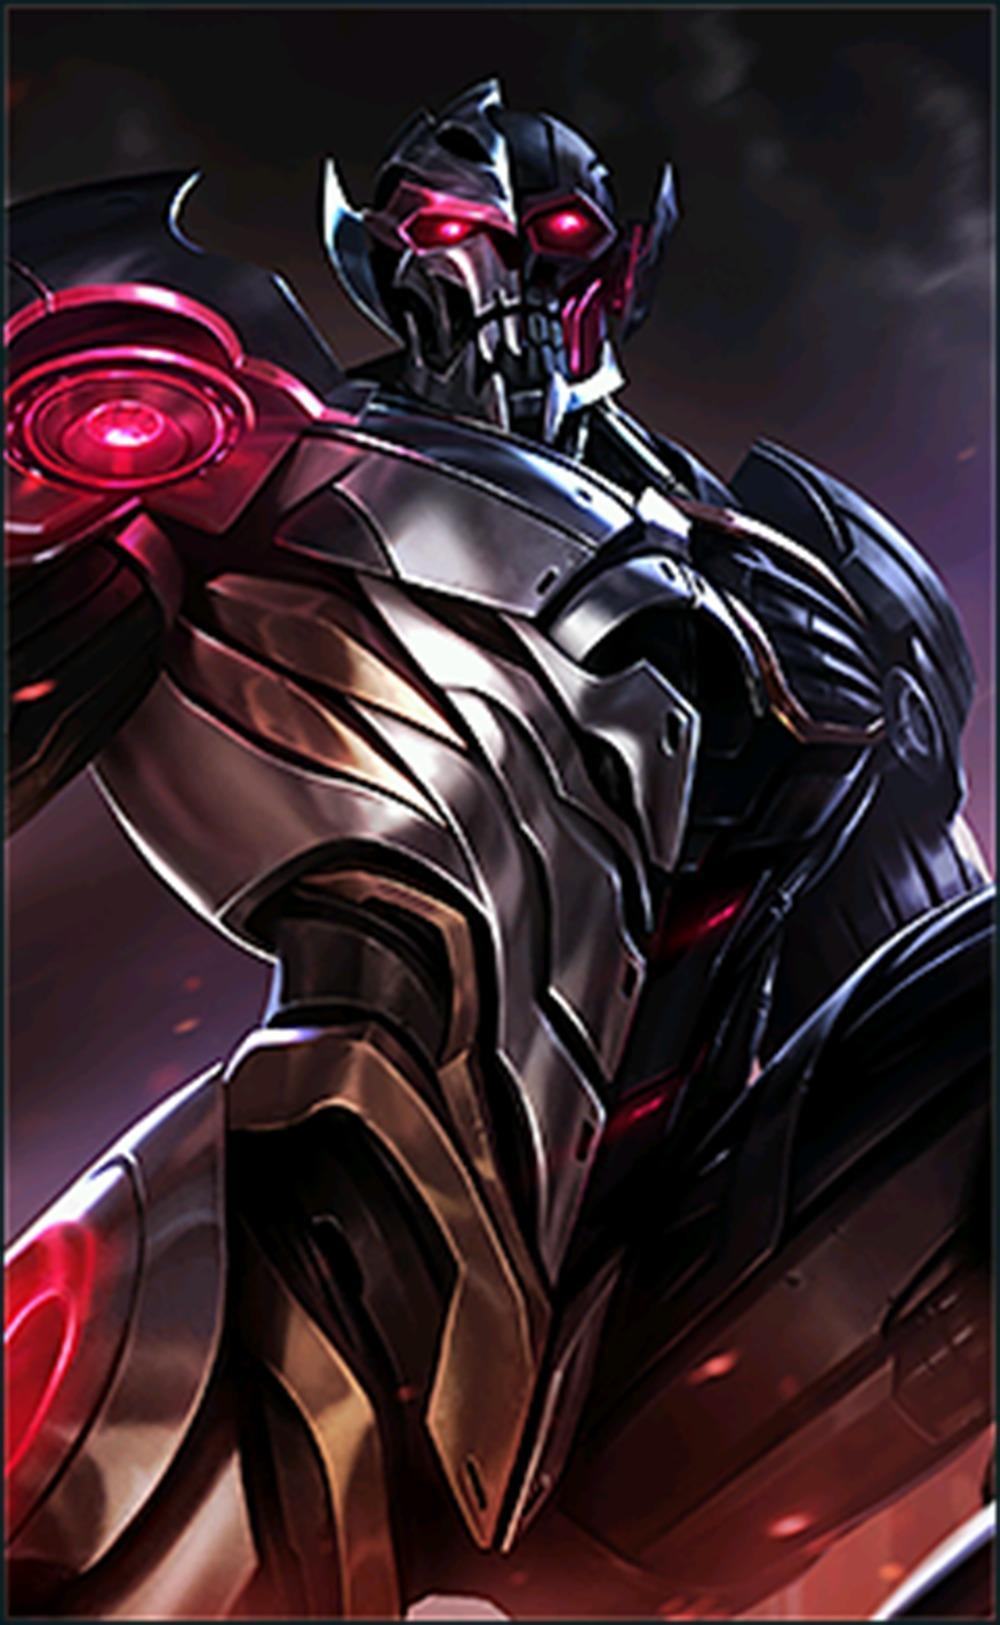 Best Skin Mobile Legends Wallpaper HD for Android   APK Download 1000x1625